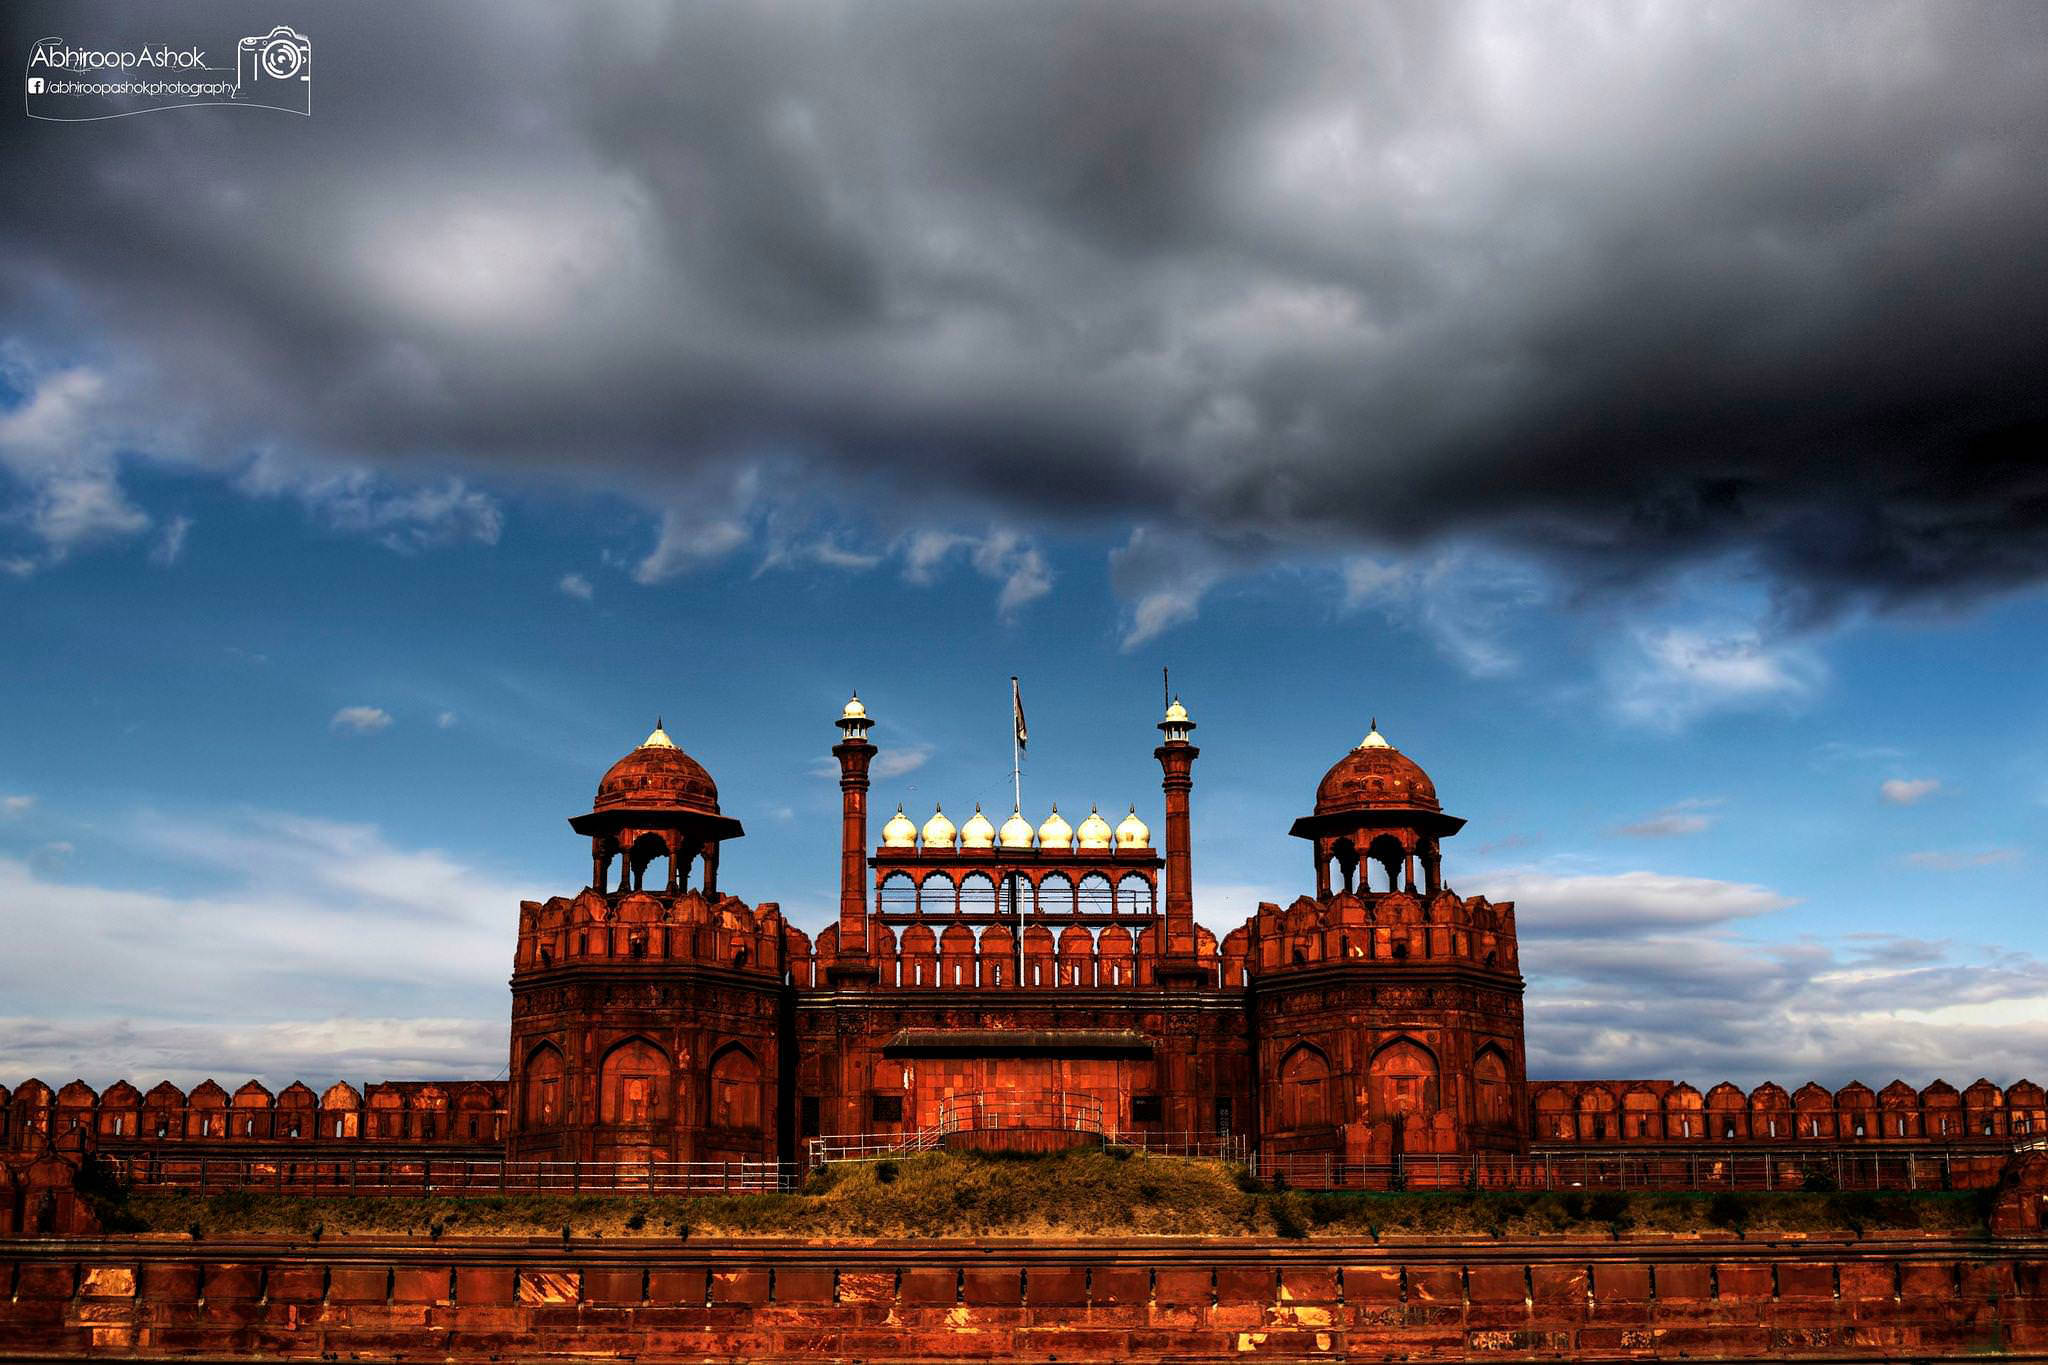 The Red Fort (New Delhi)